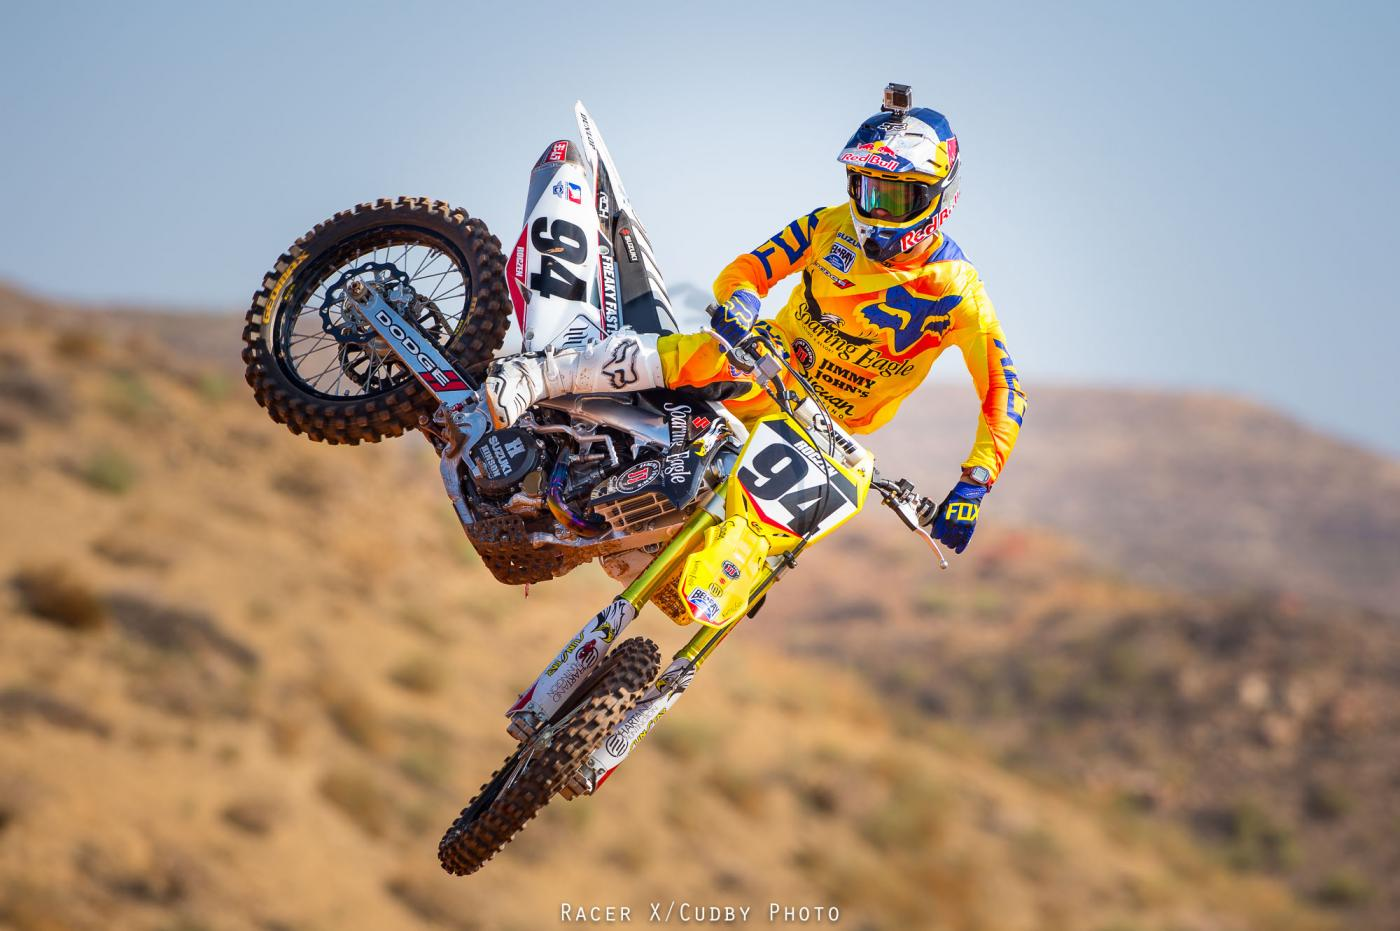 The 23-year old son of father (?) and mother(?), 170 cm tall Ken Roczen in 2017 photo